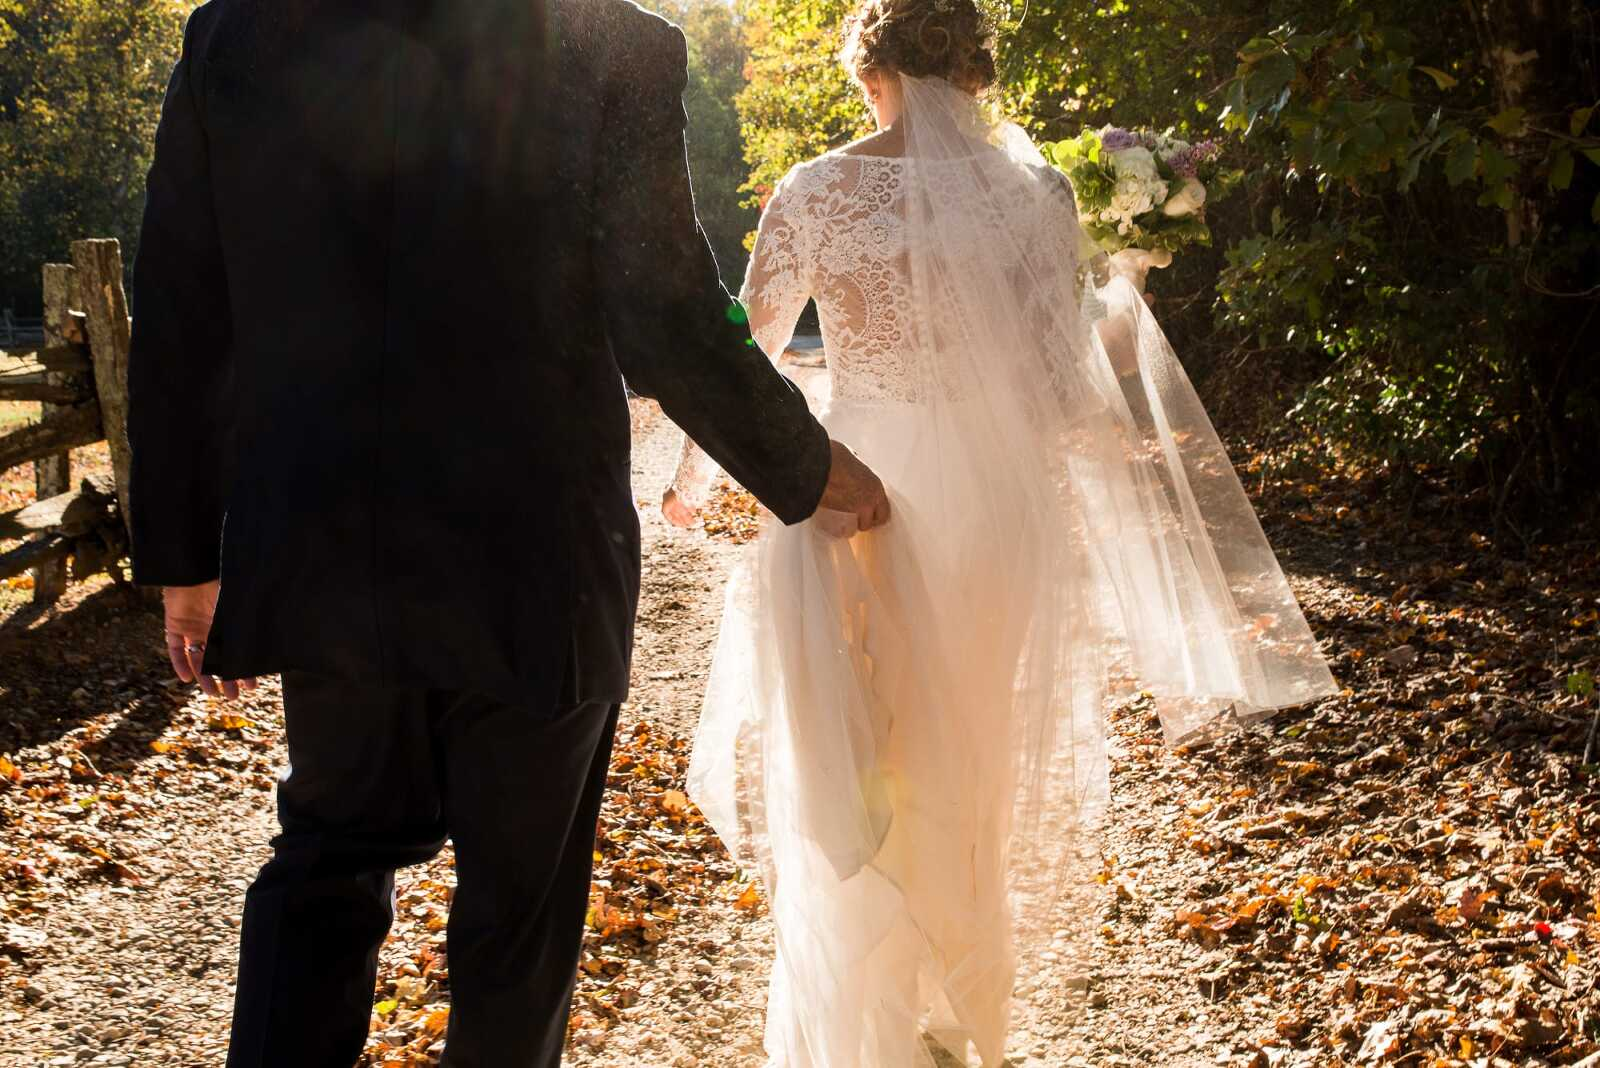 Bride and groom walking down dust road into sunset